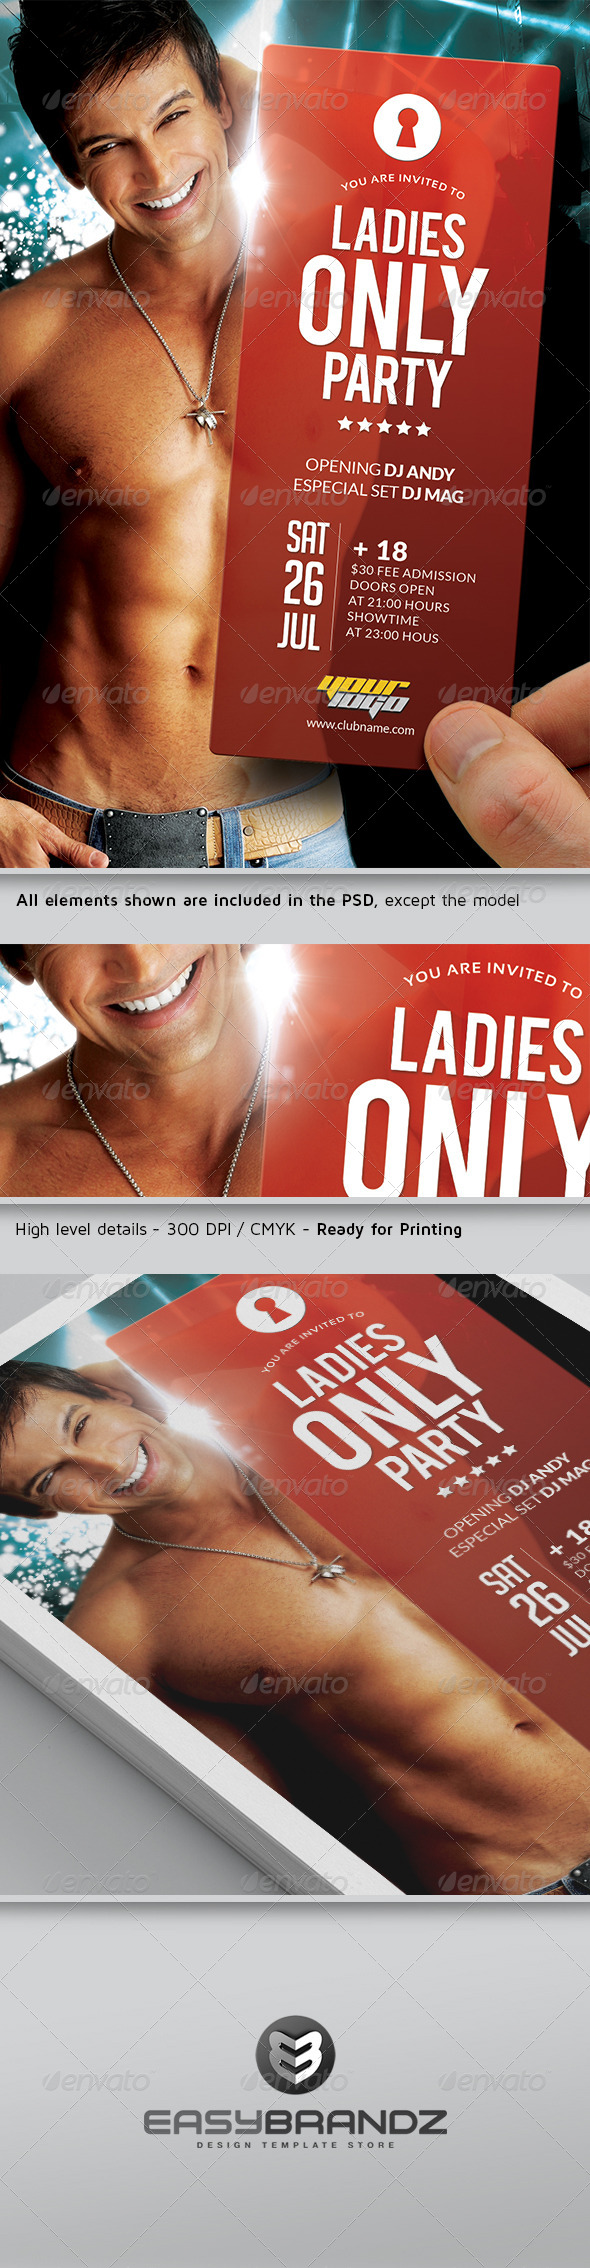 Ladies Only Flyer Template - Events Flyers